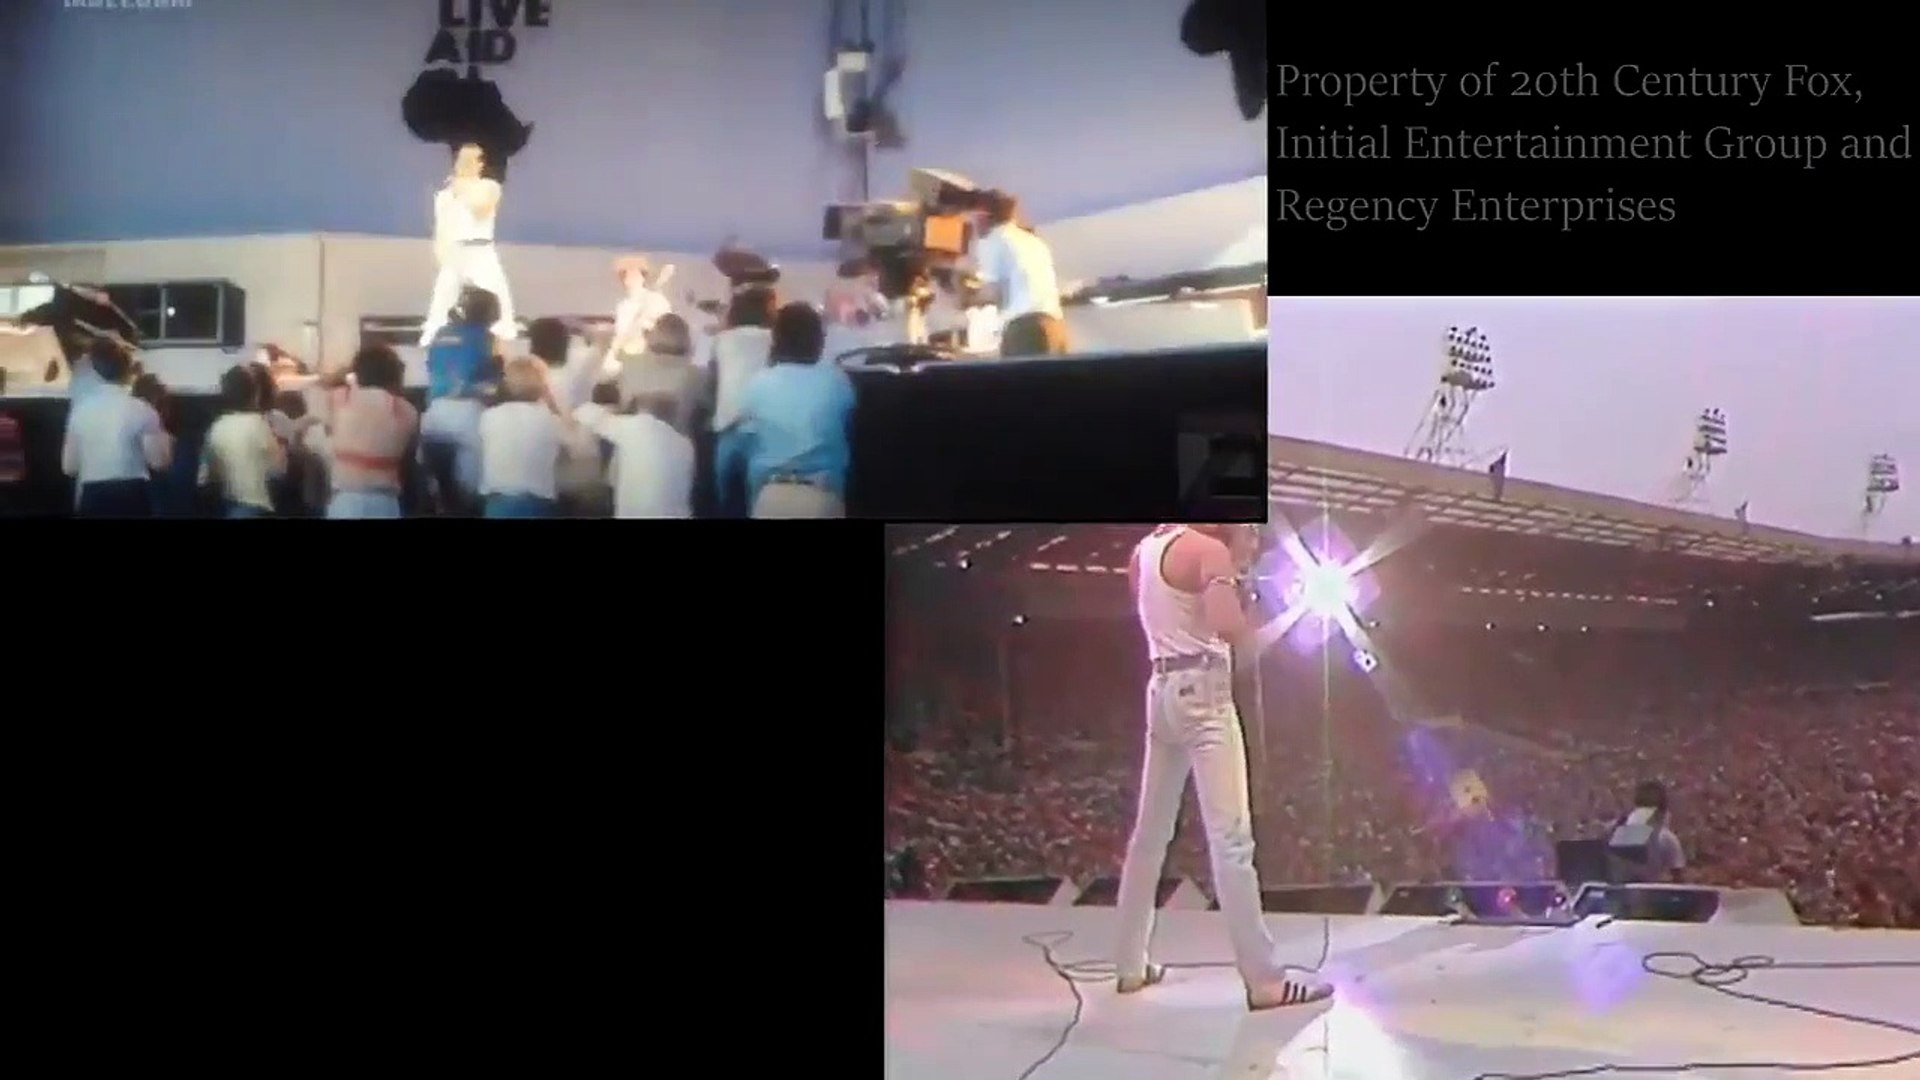 Bohemian Rhapsody : Live Aid 1985 compared to the Live Aid scene in the movie